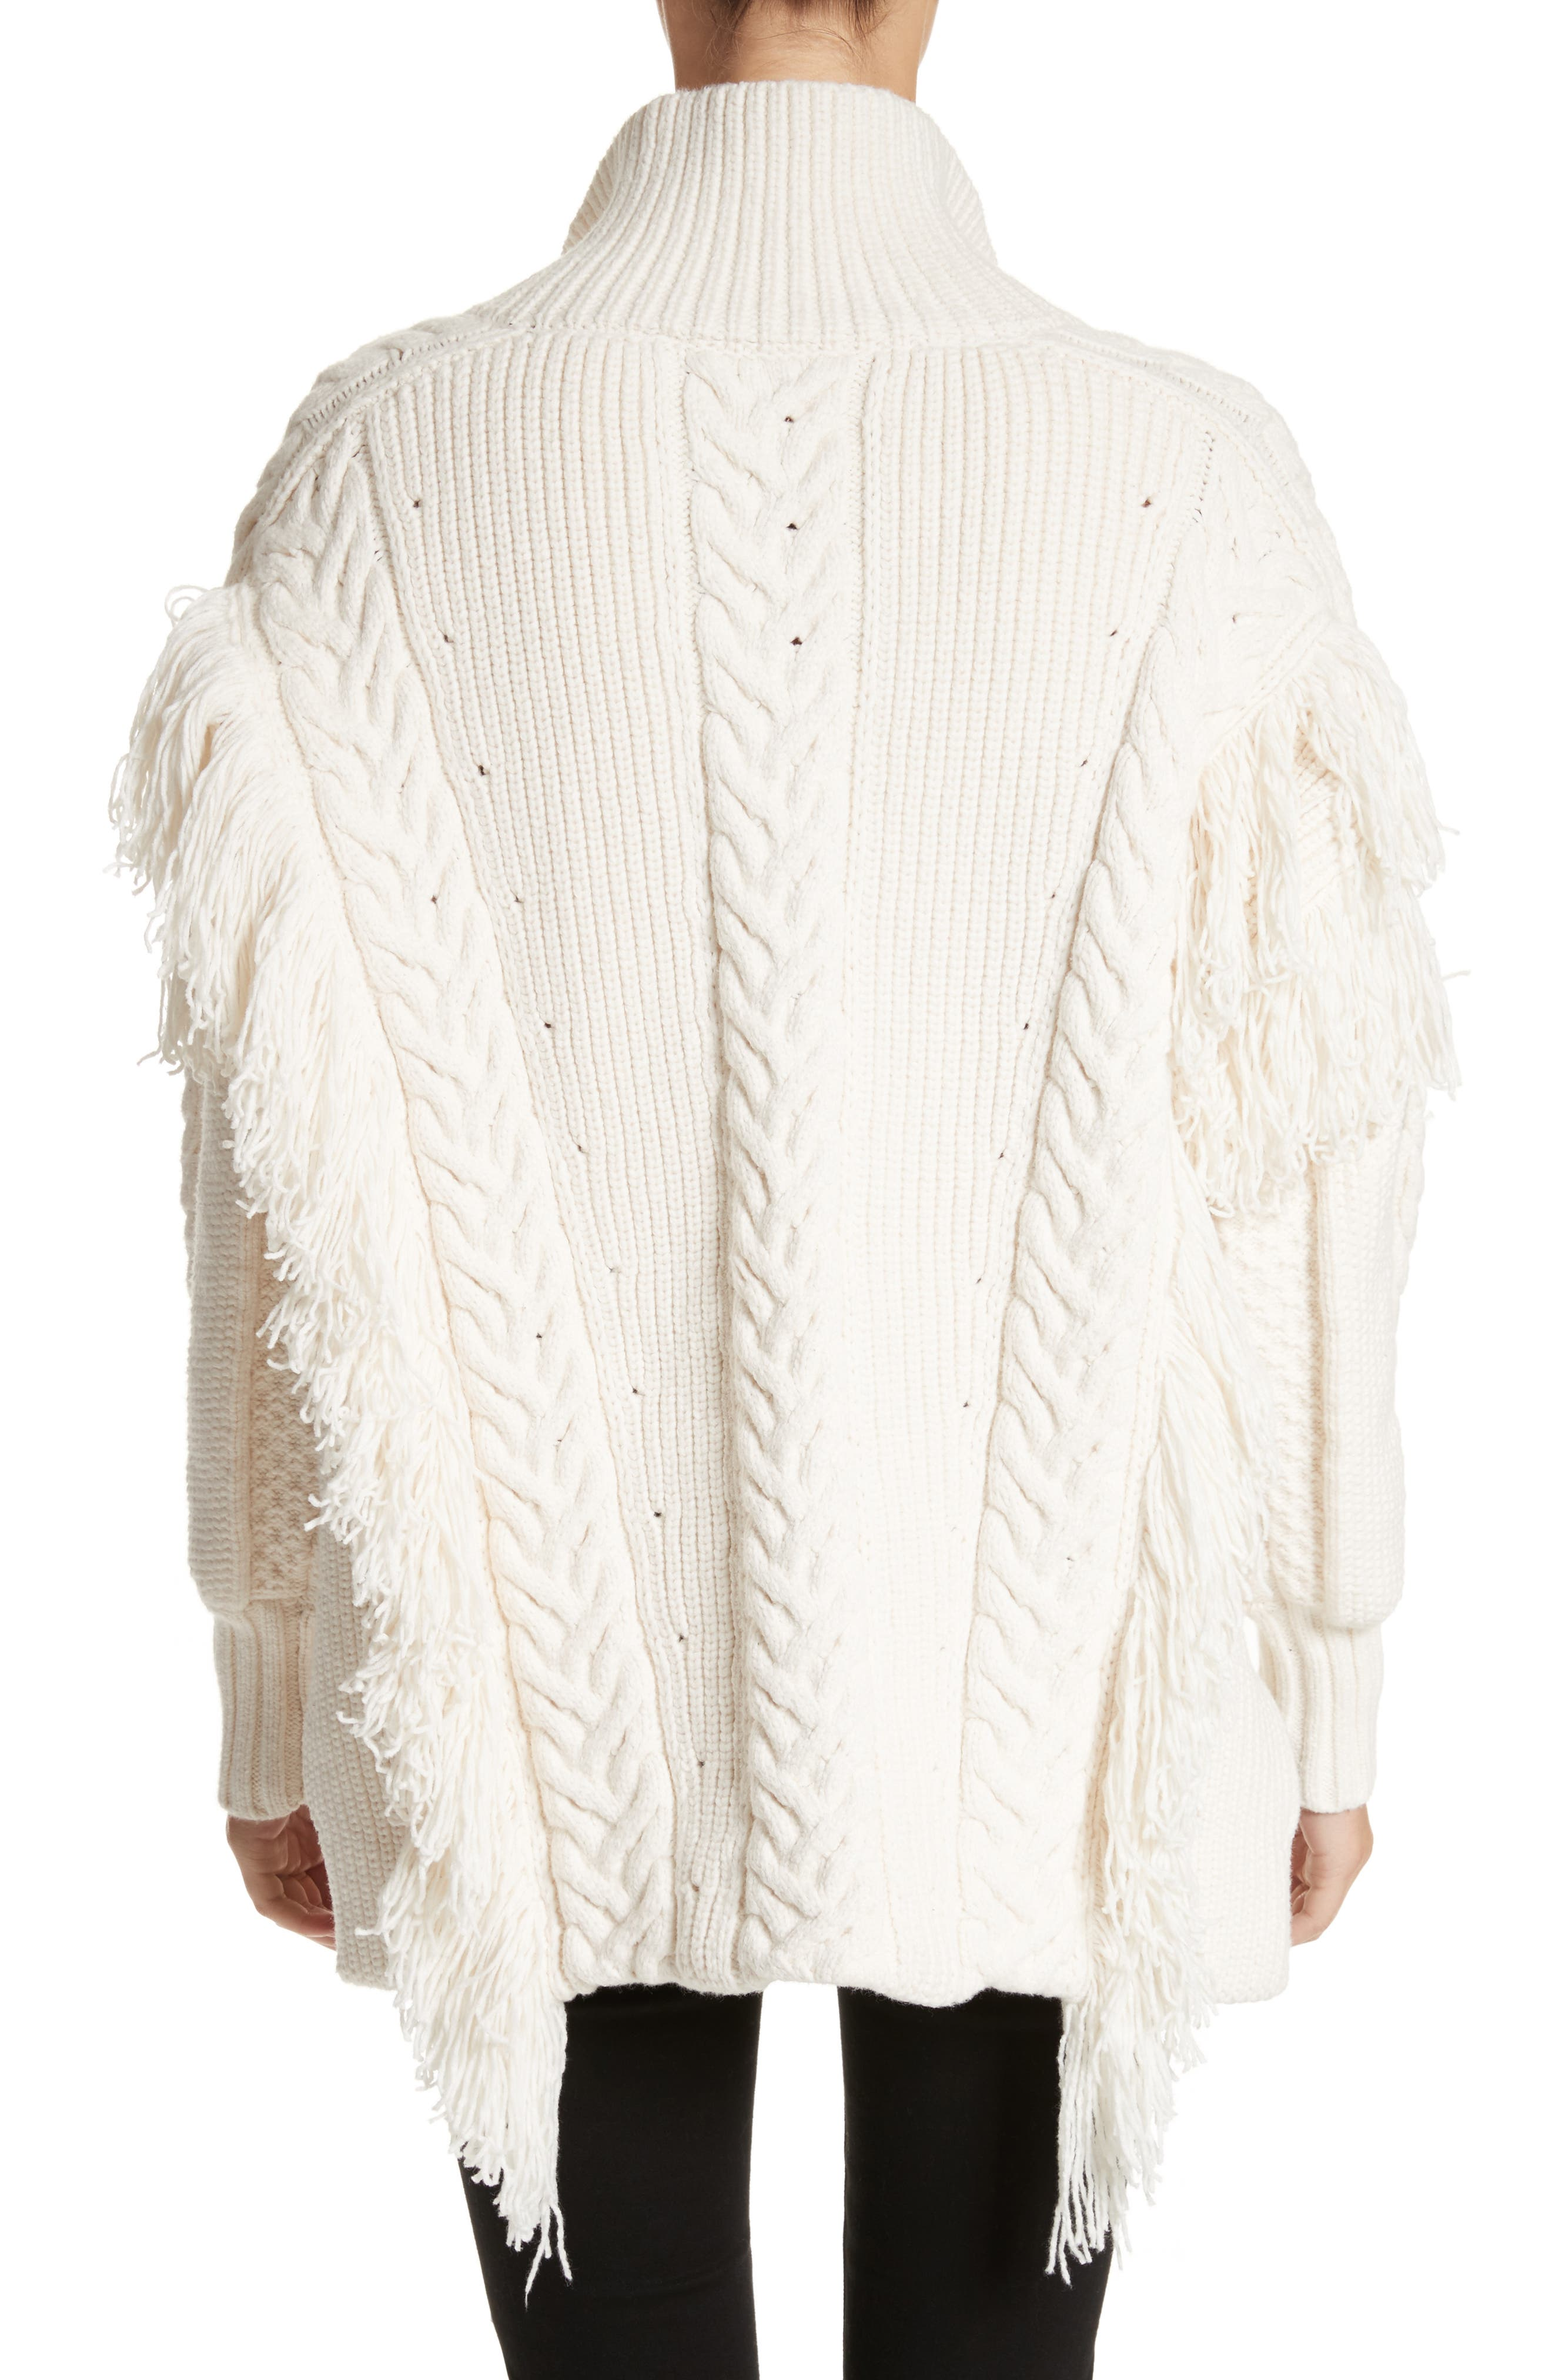 Borbore Fringed Cable Knit Sweater,                             Alternate thumbnail 2, color,                             103